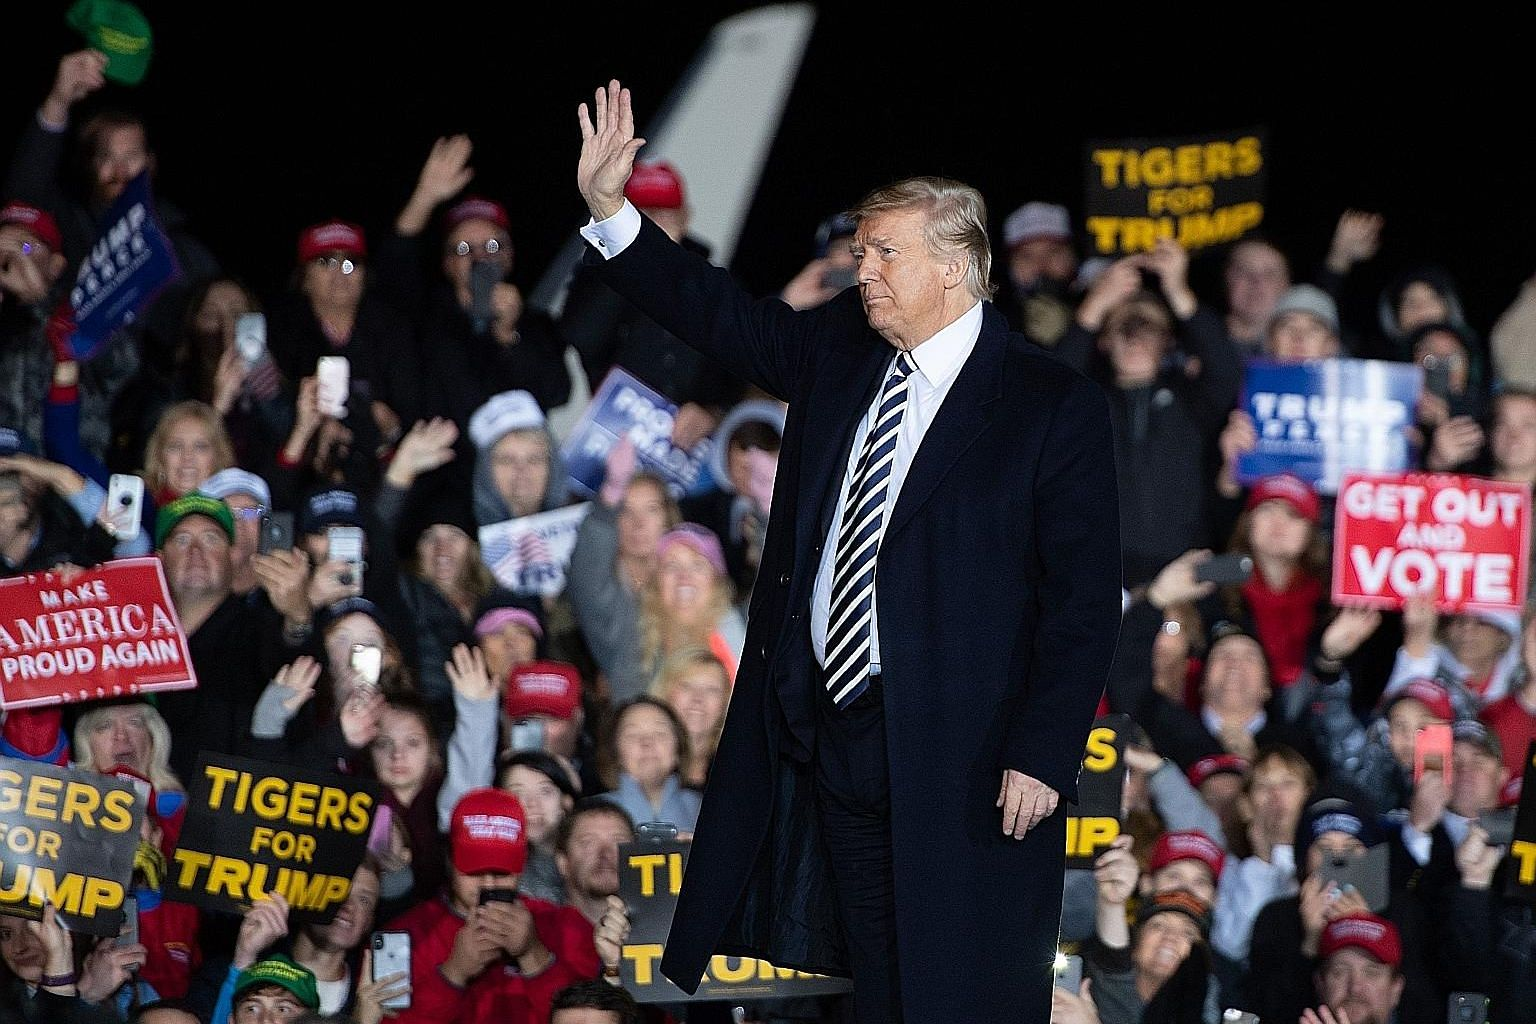 US President Donald Trump at a rally in Columbia, Missouri, on Thursday. In the Nov 6 midterms, the Democrats need to flip 23 seats to seize control of the House, and are expected to succeed. The Republicans are expected to retain control of the Sena